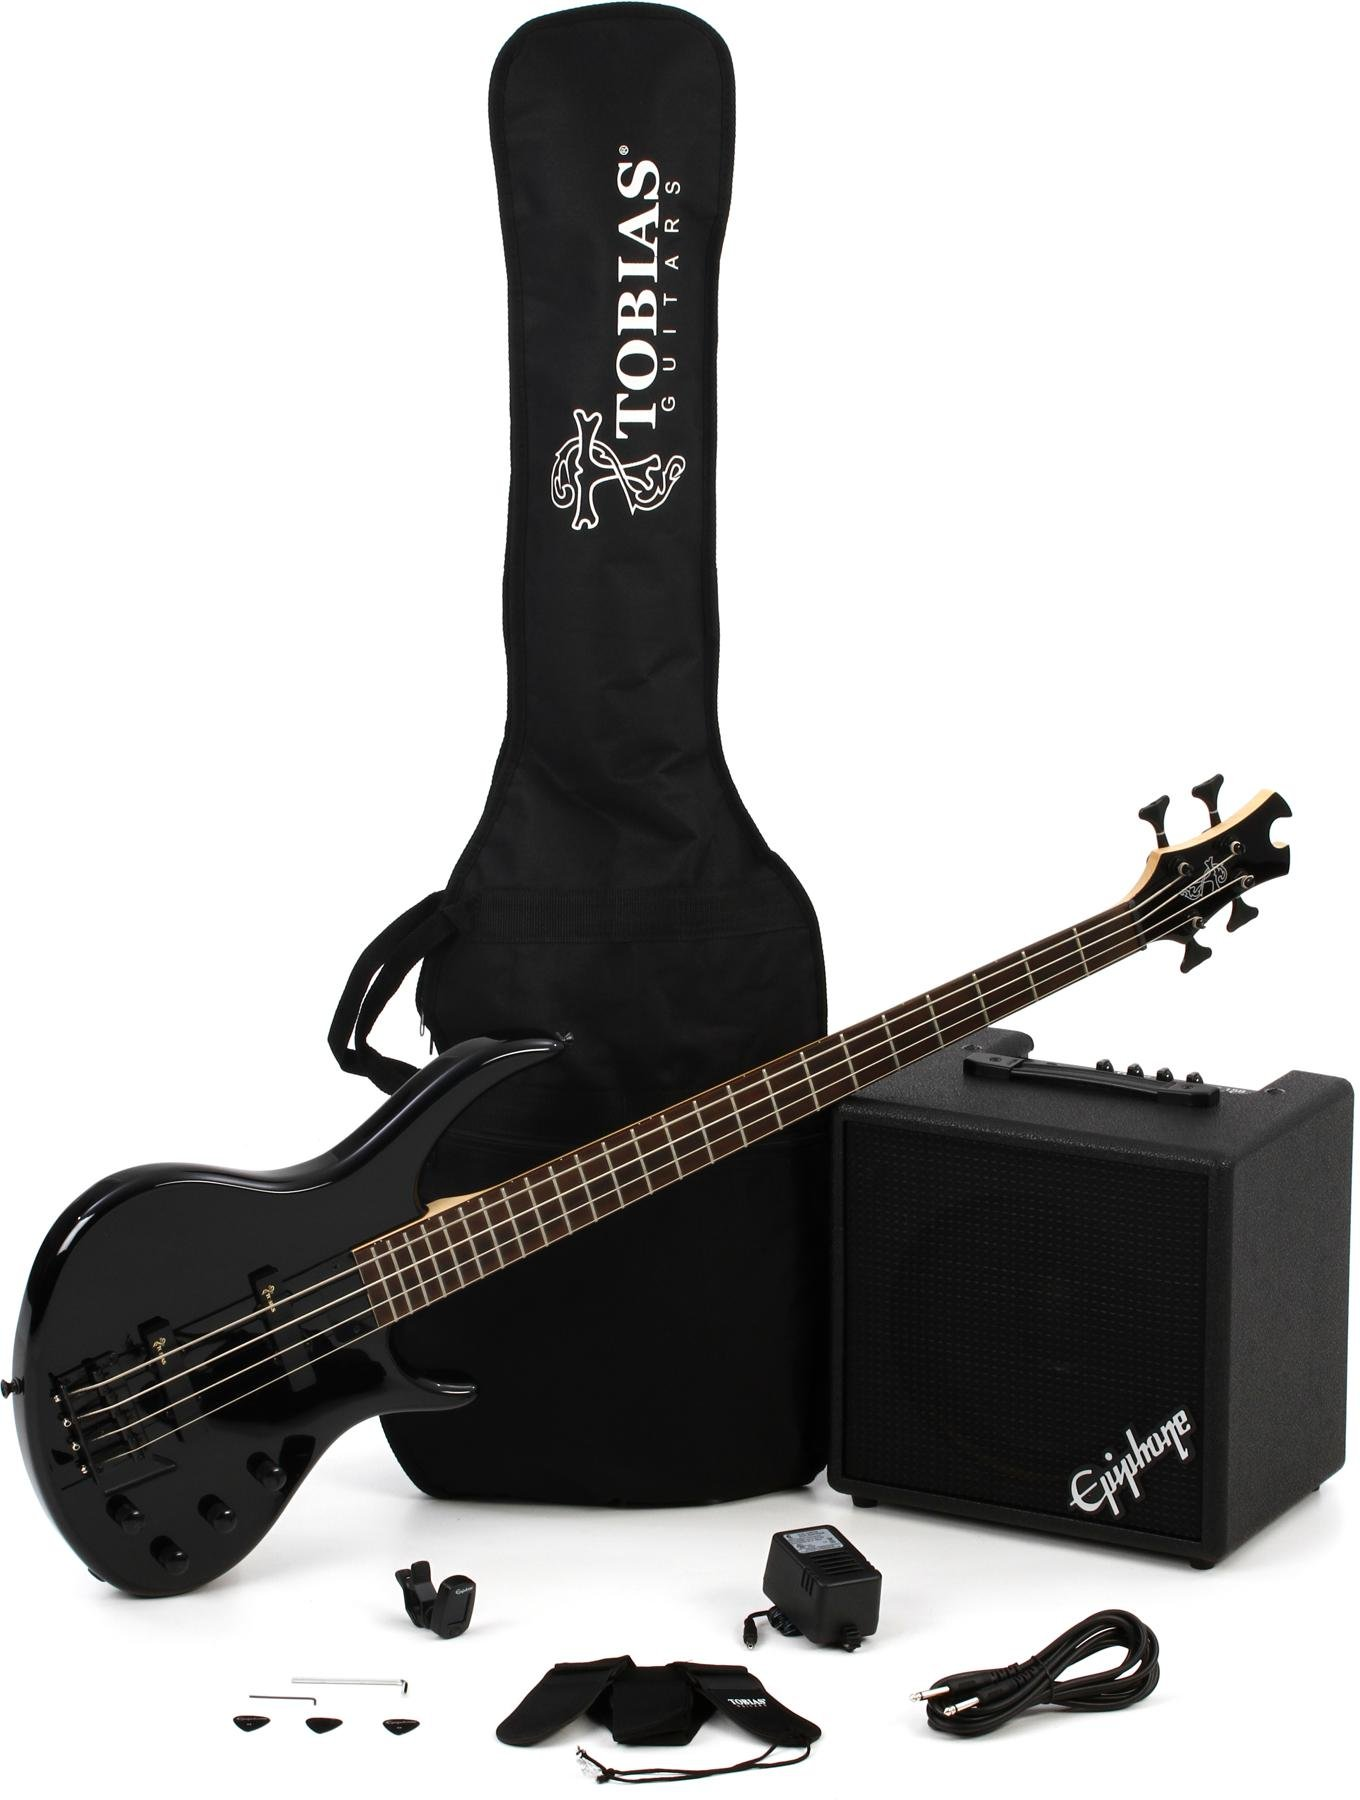 ae83daf72d0 Epiphone Toby Bass Performance Pack - Ebony. Bass Pack Including 4-string  Bass Guitar ...